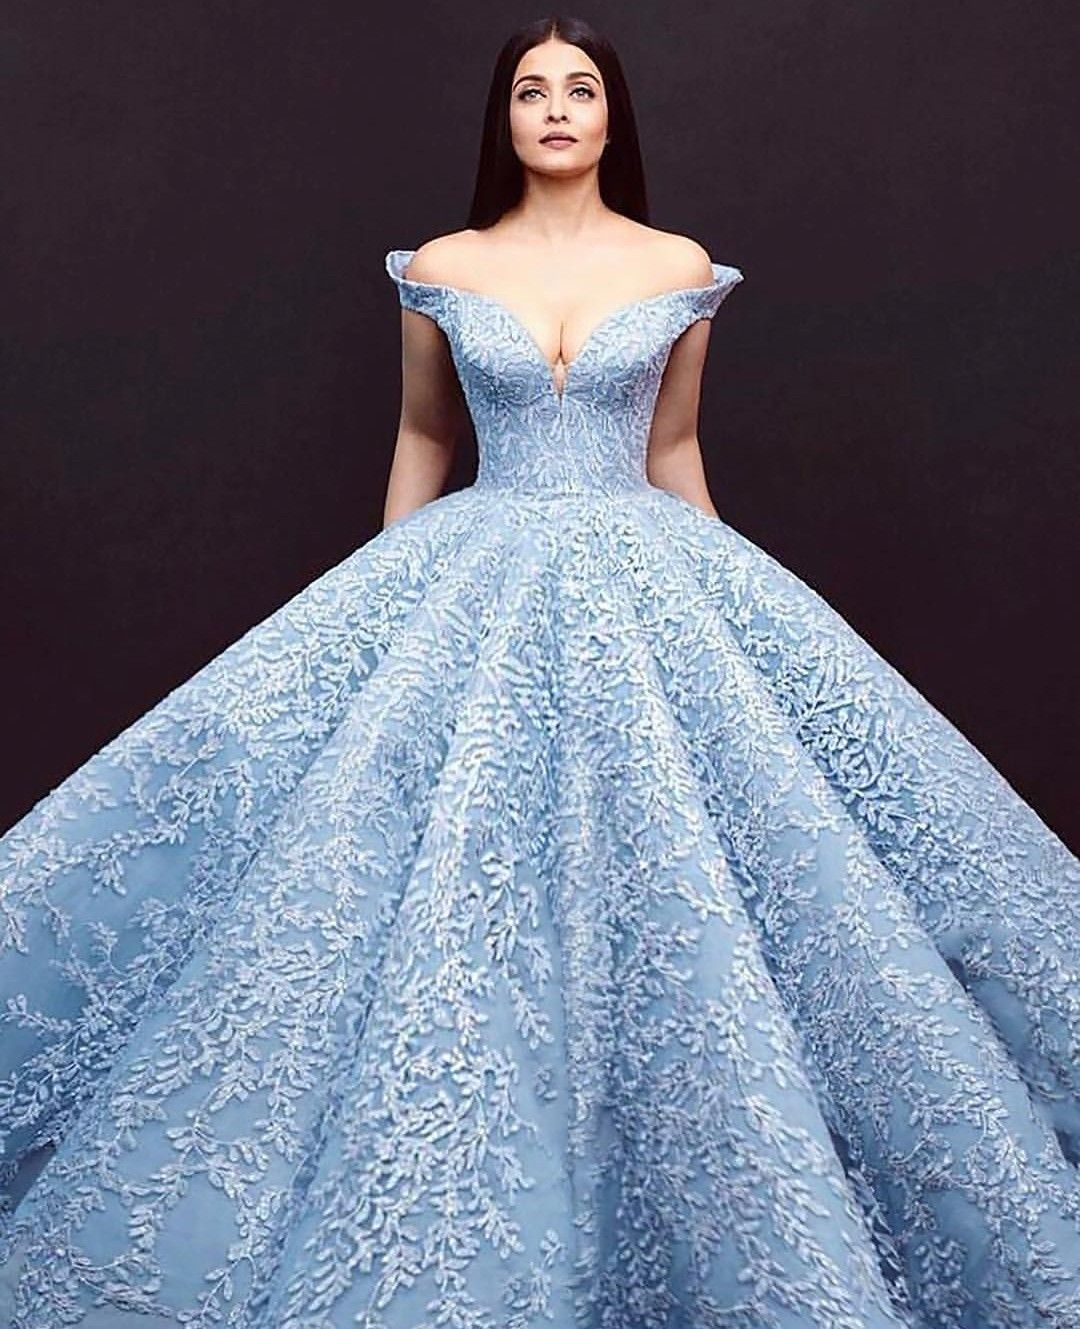 Super stunning Bollywood Queen Aishwarya Rai in her magnificent ball ...